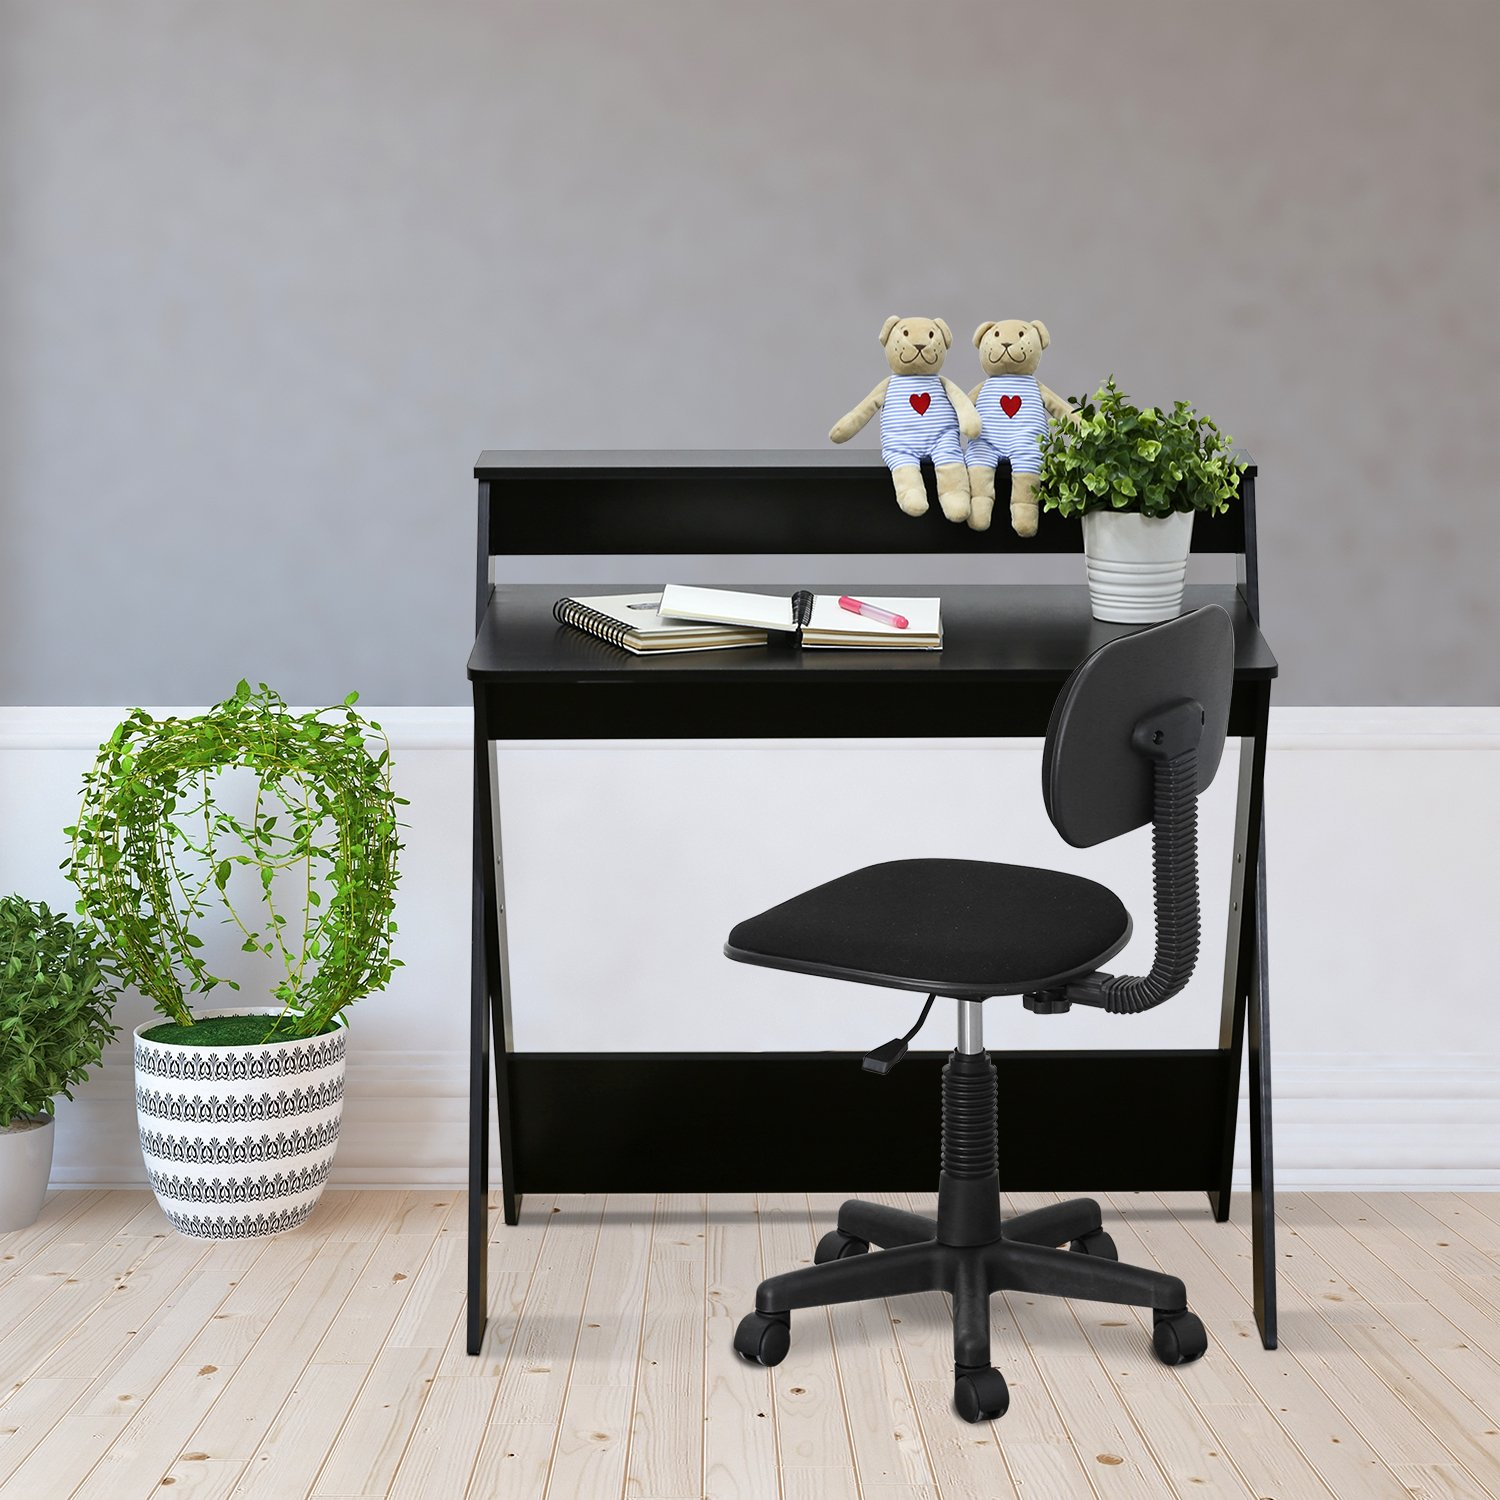 Furinno 16047EX Simplistic Criss-Crossed Home Office Study Desk by Furinno (Image #5)